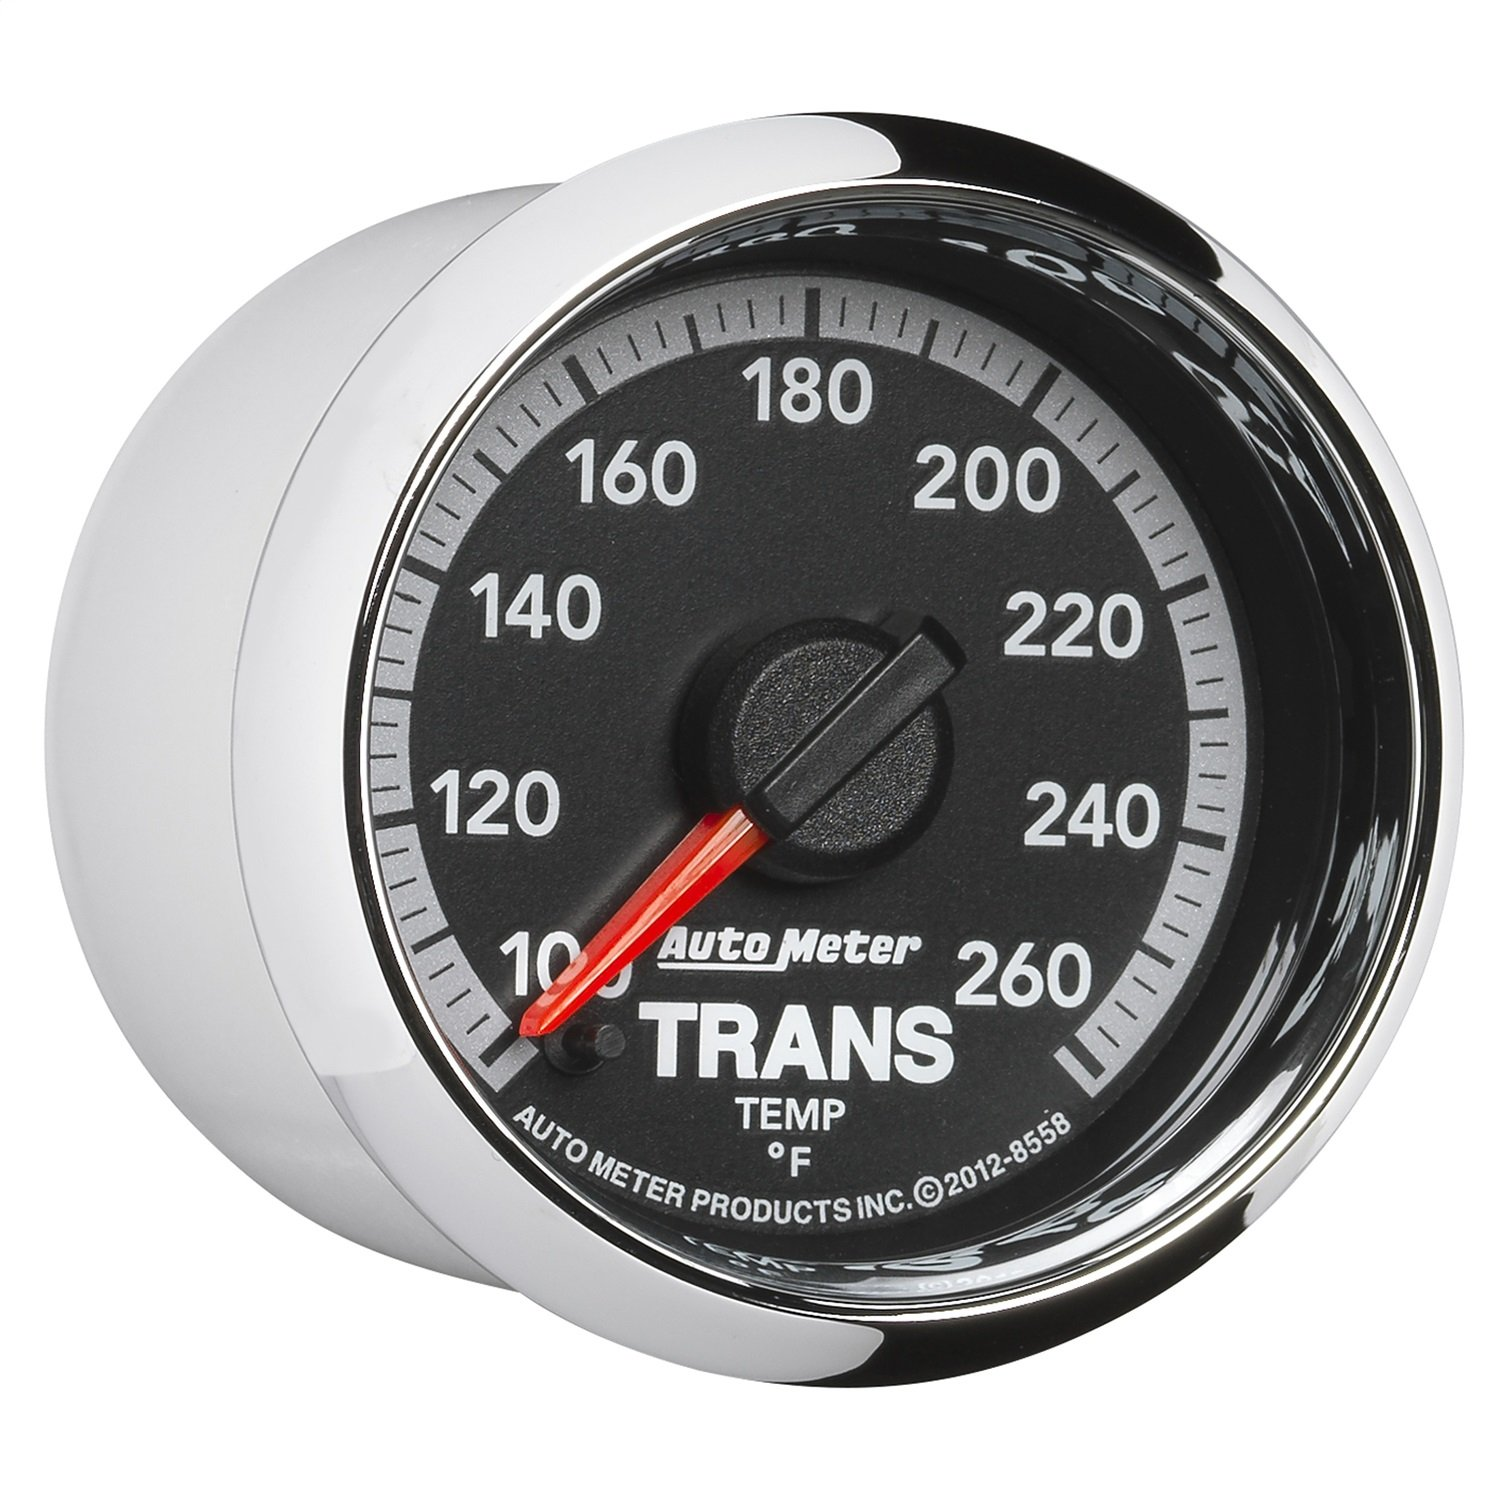 Auto Meter 8558 Factory Match 2-1/16'' Electric Transmission Temperature Gauge (100-260 Degree F, 52.4mm) by Auto Meter (Image #3)